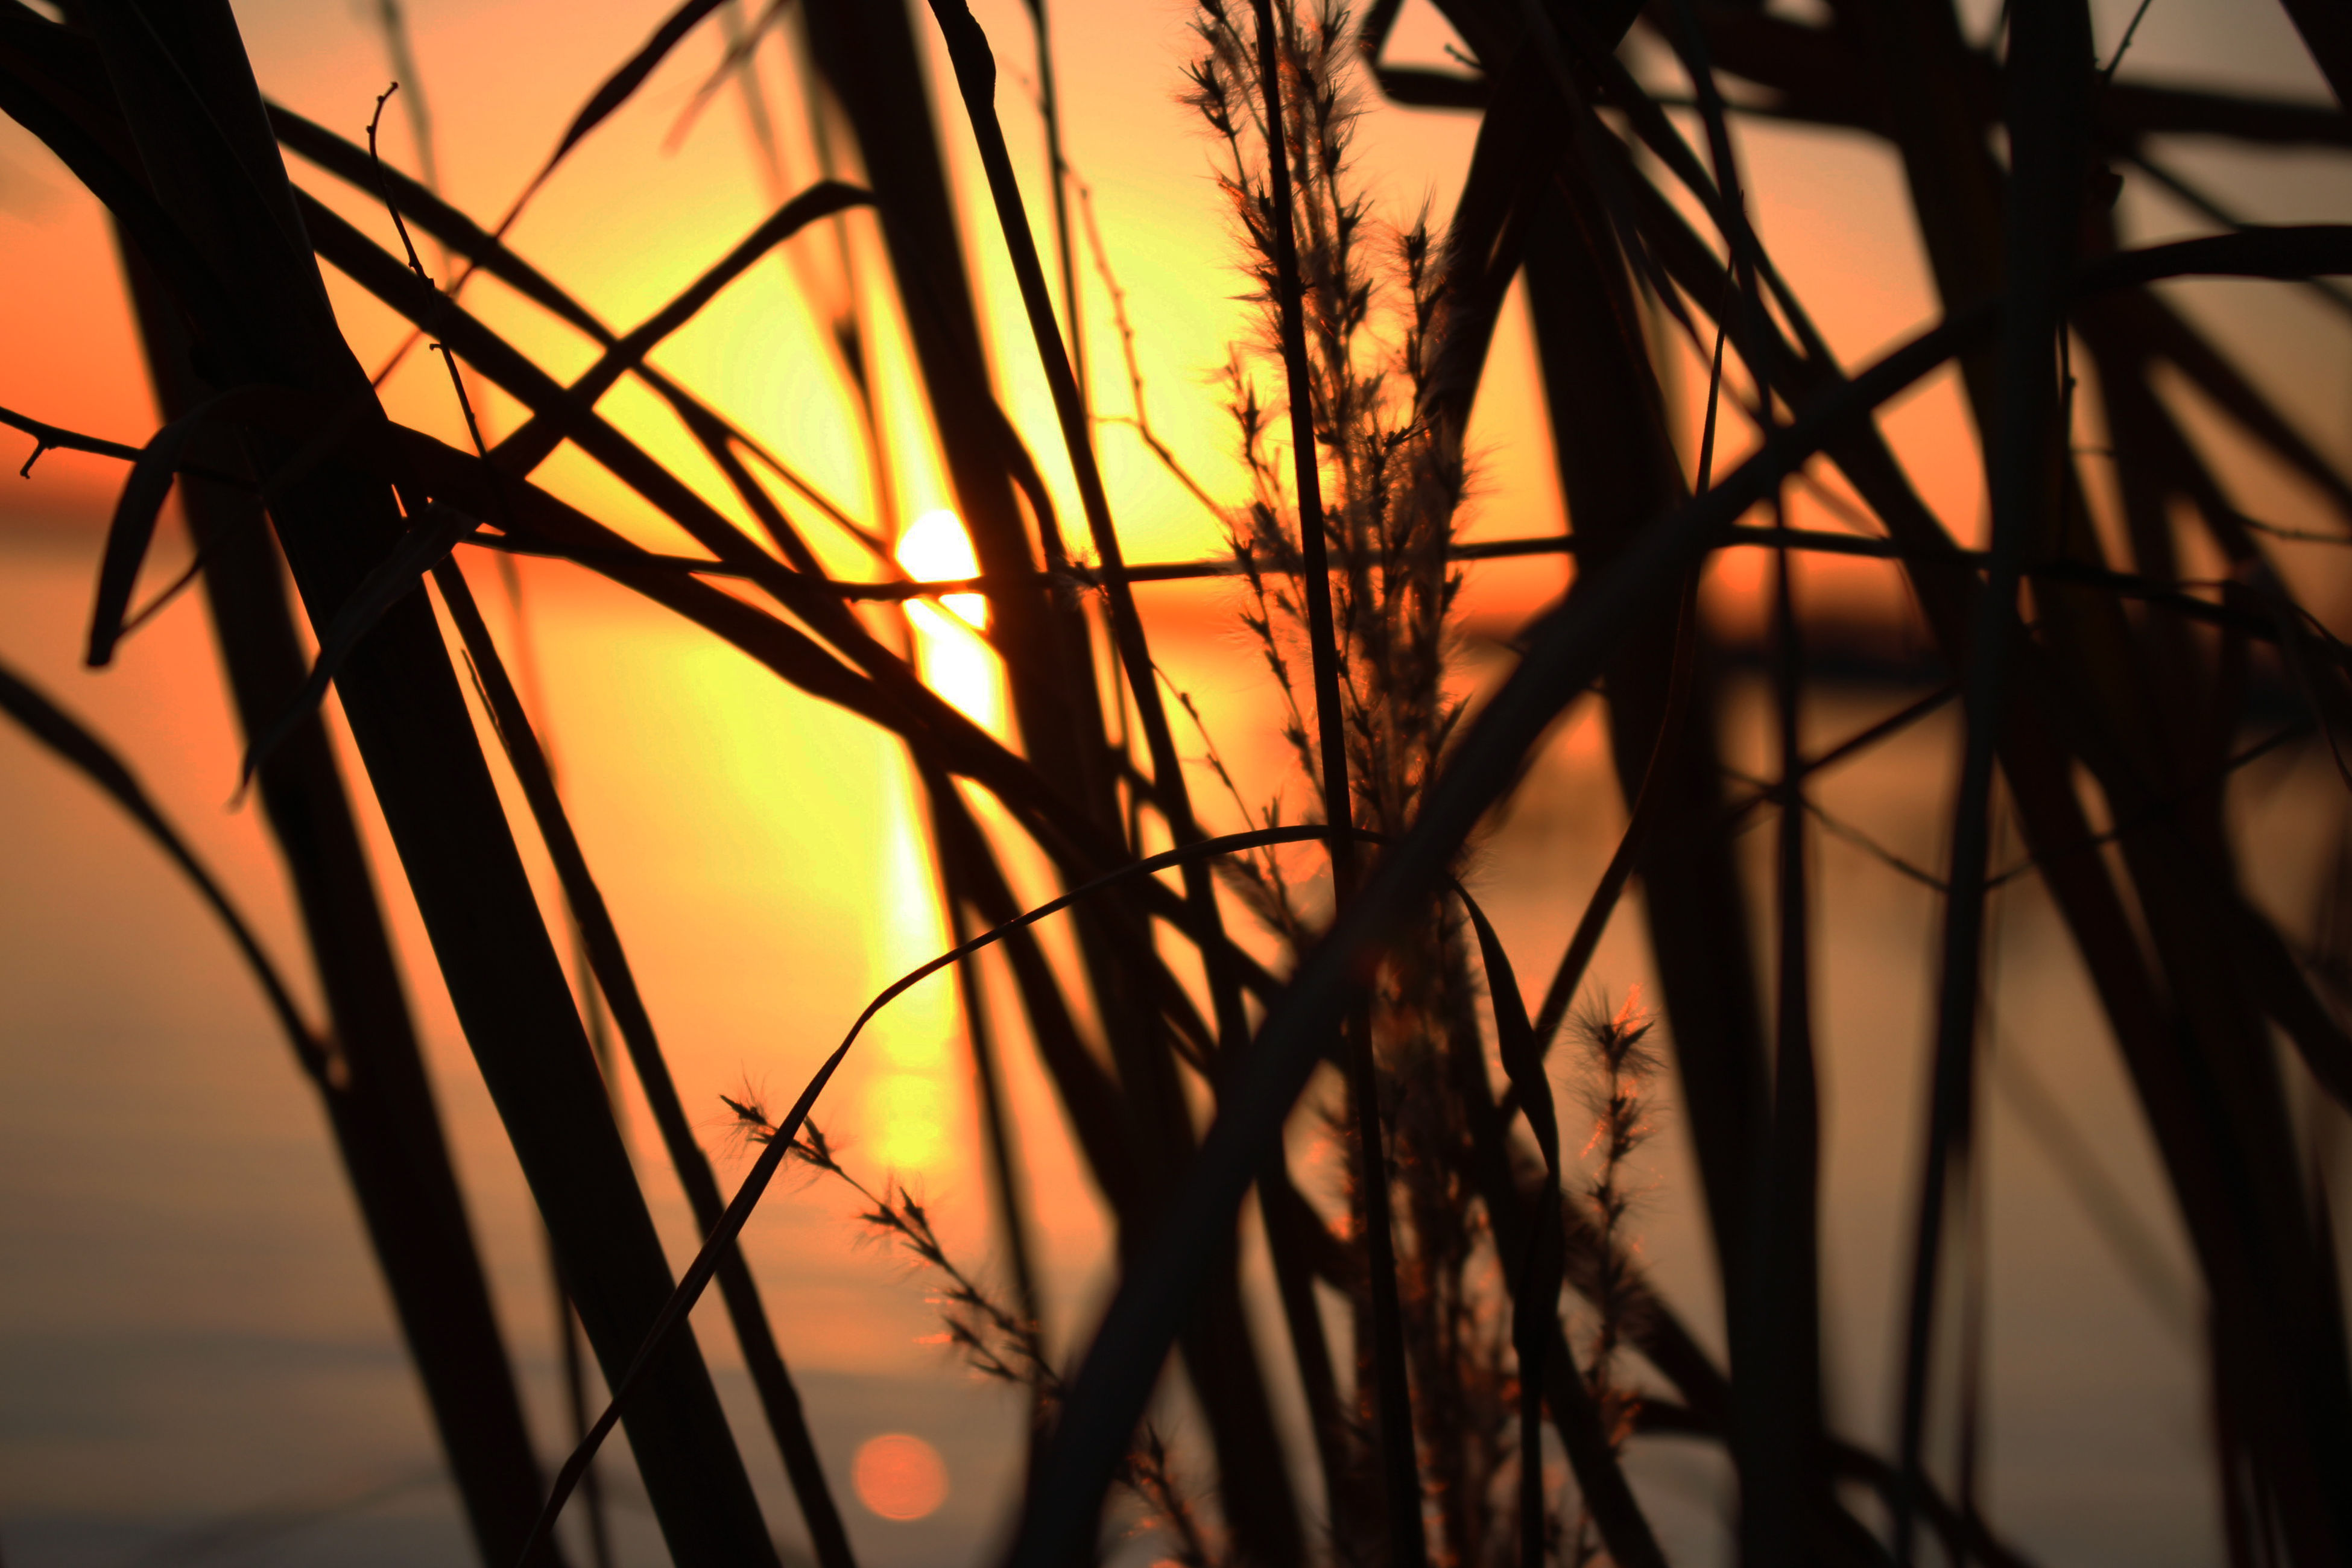 sunset, nature, silhouette, sky, beauty in nature, orange color, no people, scenics, sun, growth, outdoors, plant, tranquility, tranquil scene, tree, close-up, day